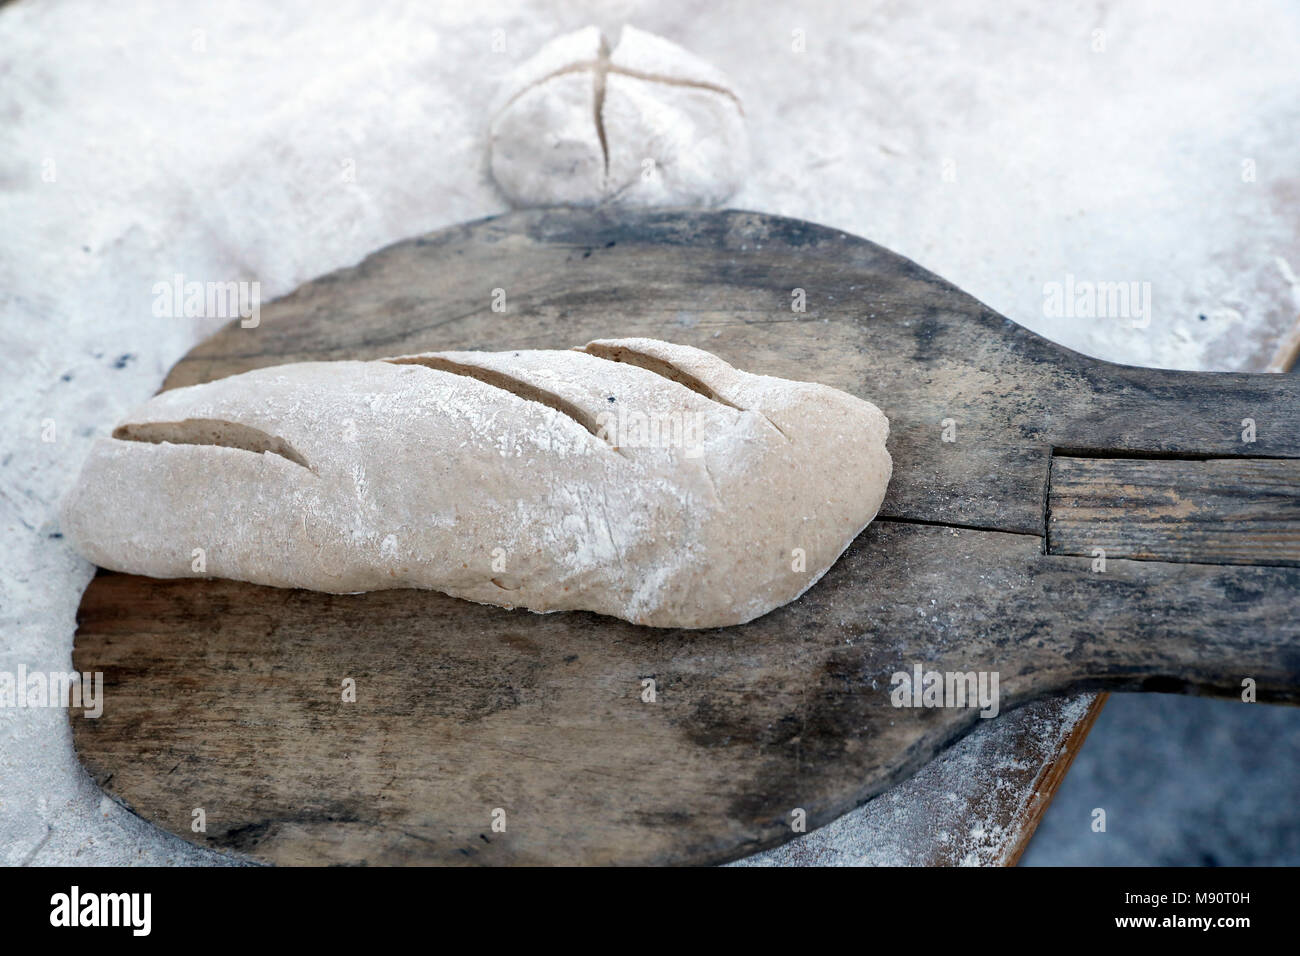 The agriculture fair (Comice Agricole) of Saint-Gervais-les-Bains. Baker making artisan bread. - Stock Image